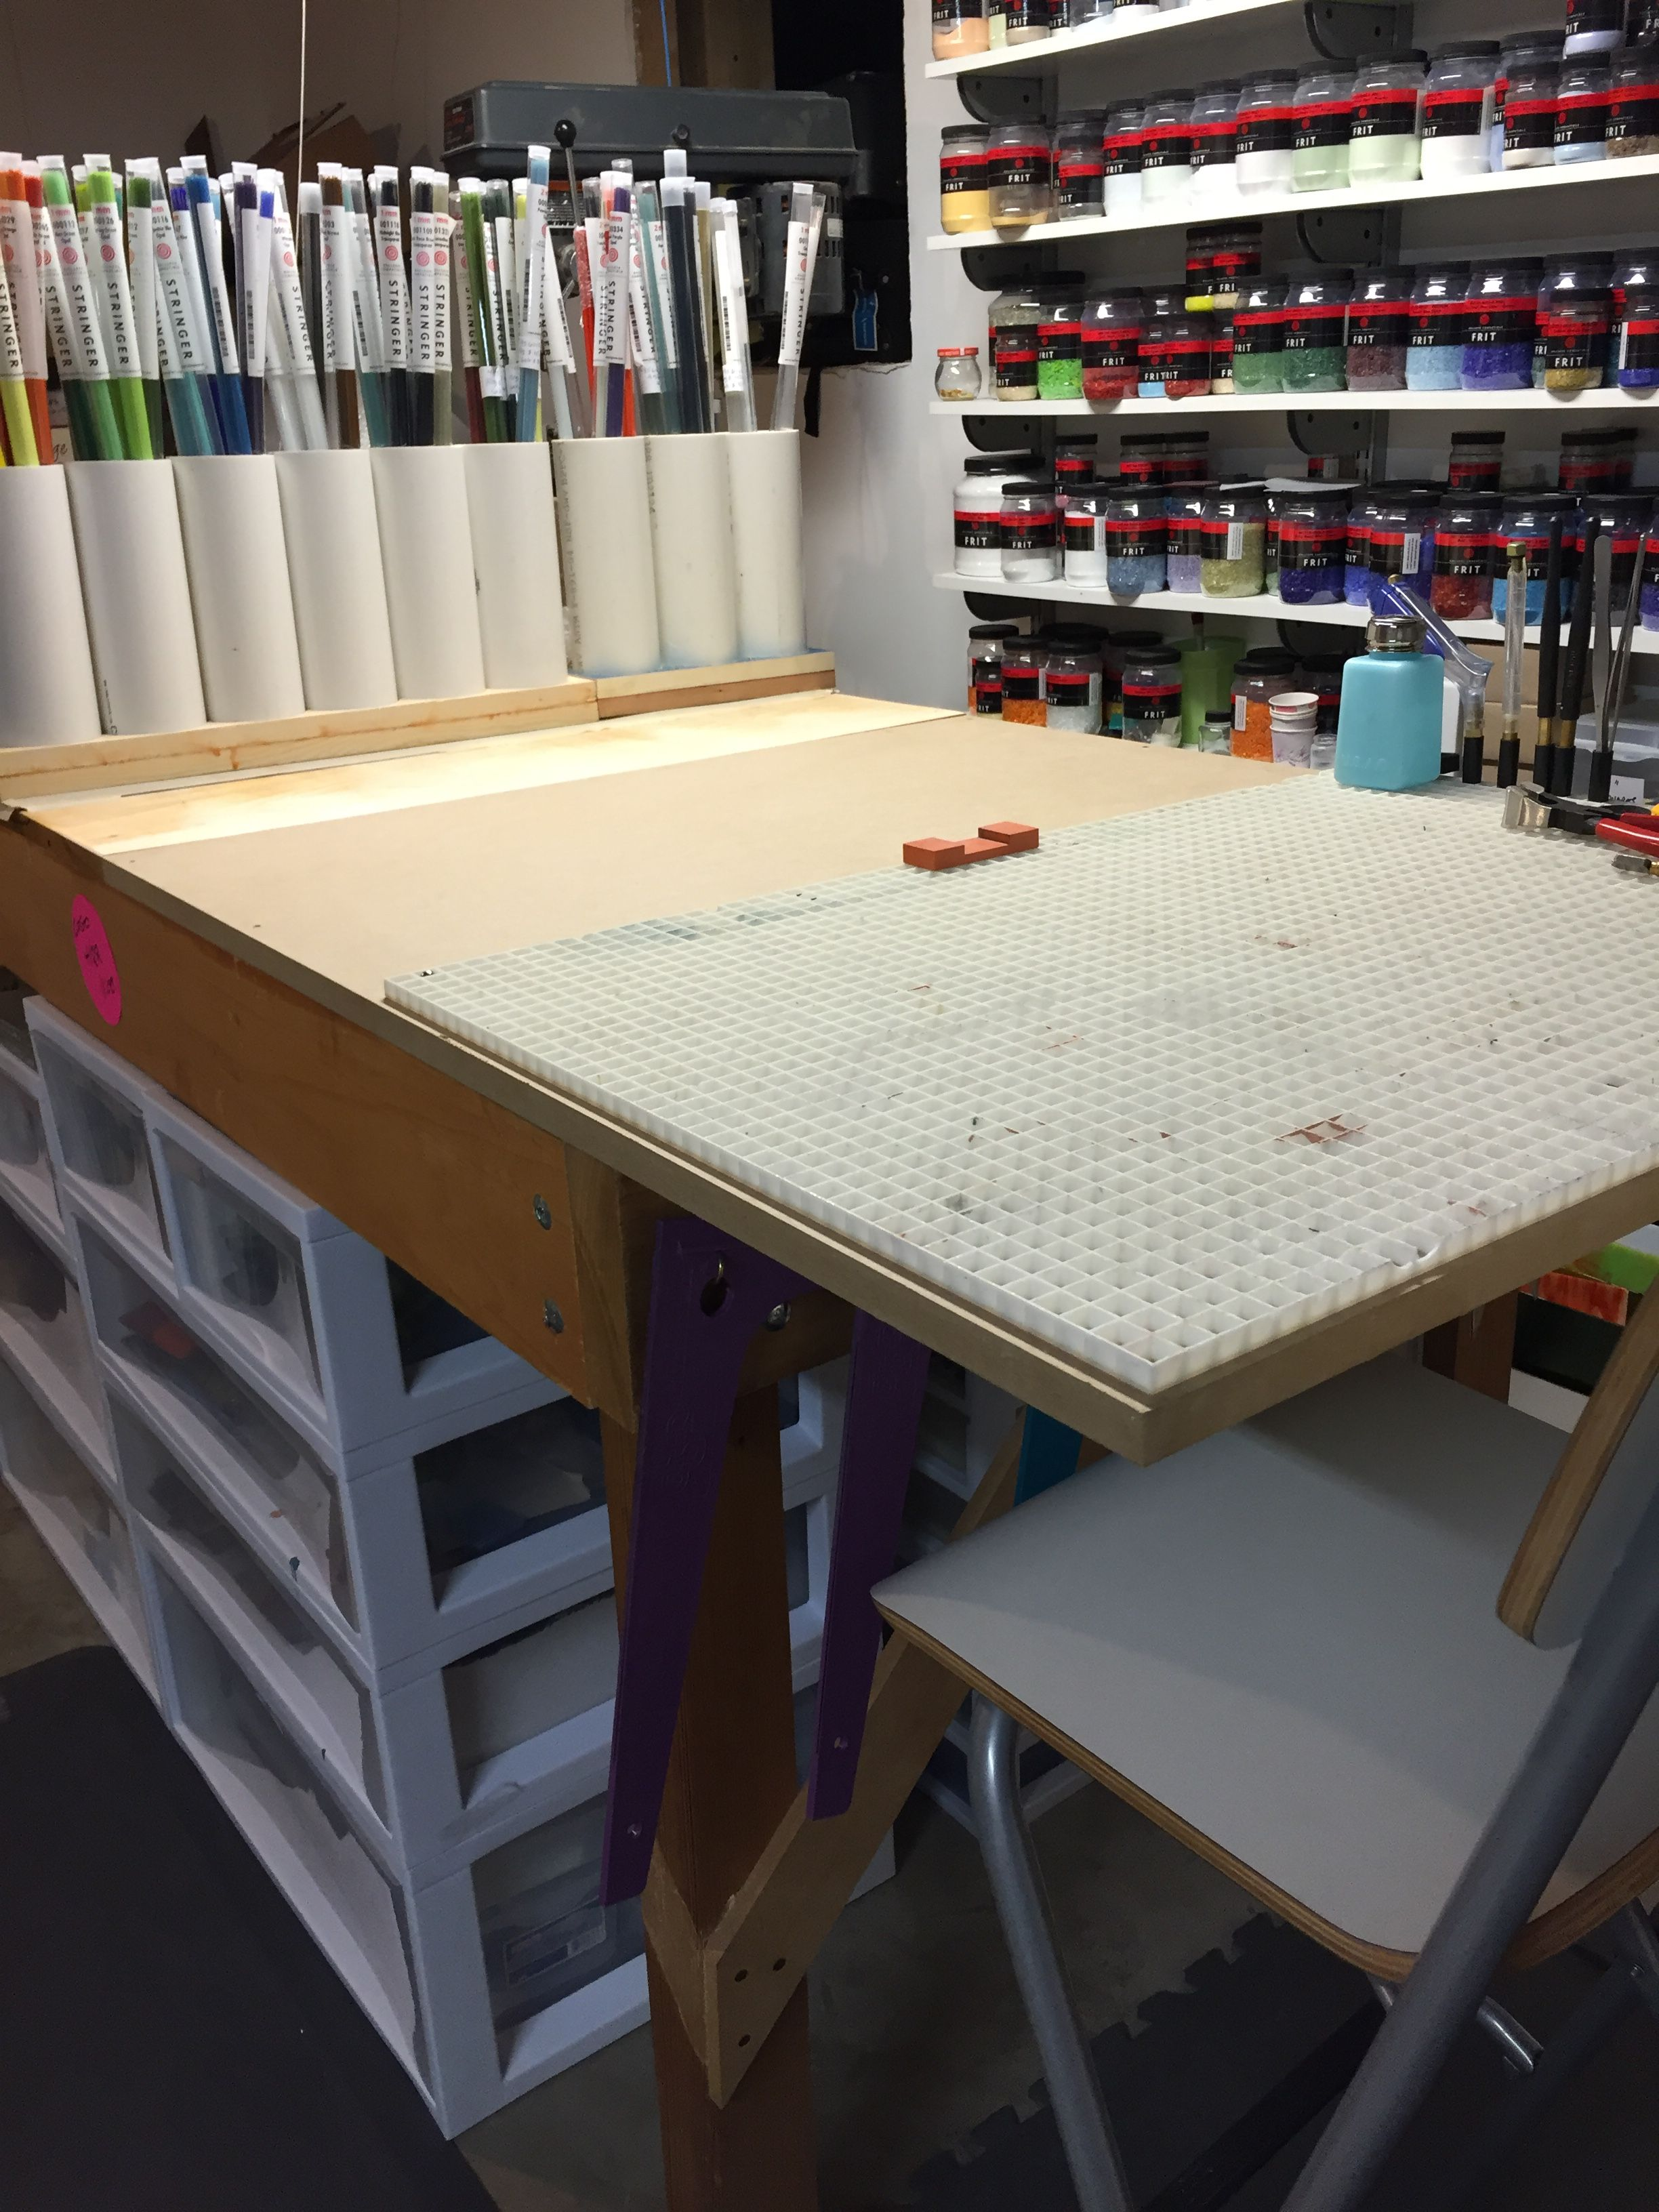 CoGoGlass studio glass cutting table with frits and bits